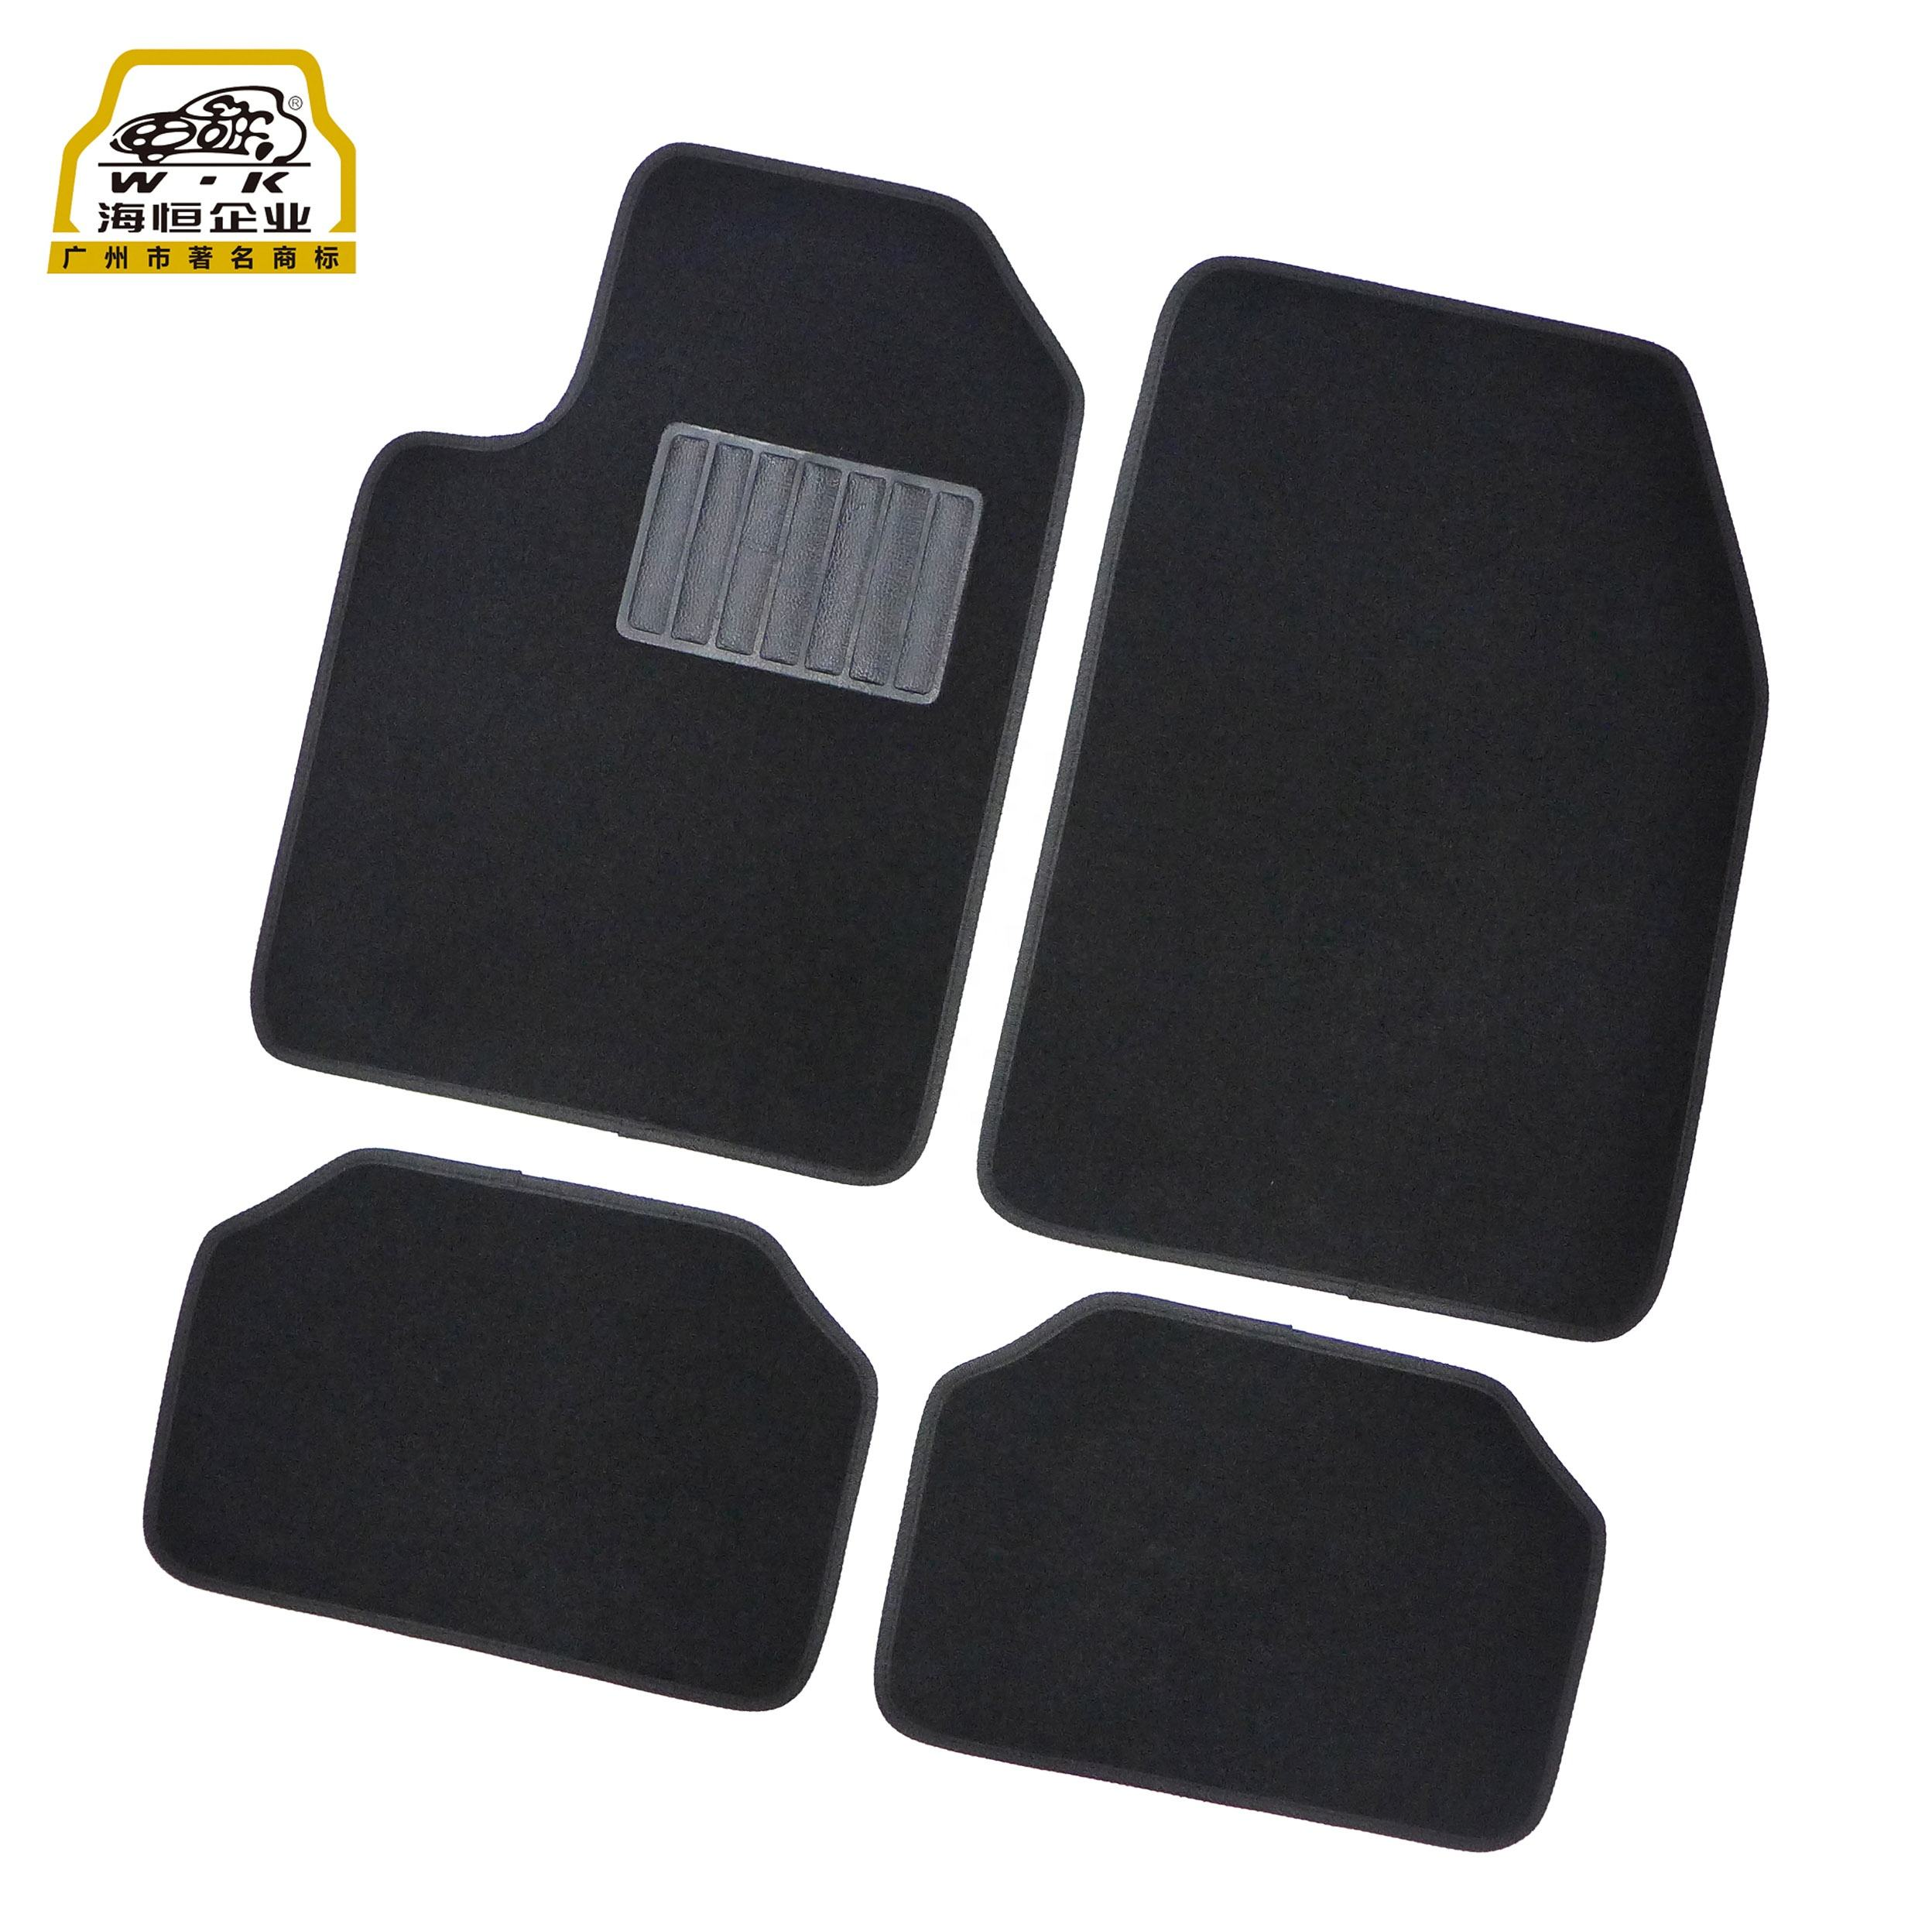 Automotive Accessories Universal Fitment Needle Felt Carpet Car Rug with Non Skid Spike Back and Pedal 4PCS for all cars